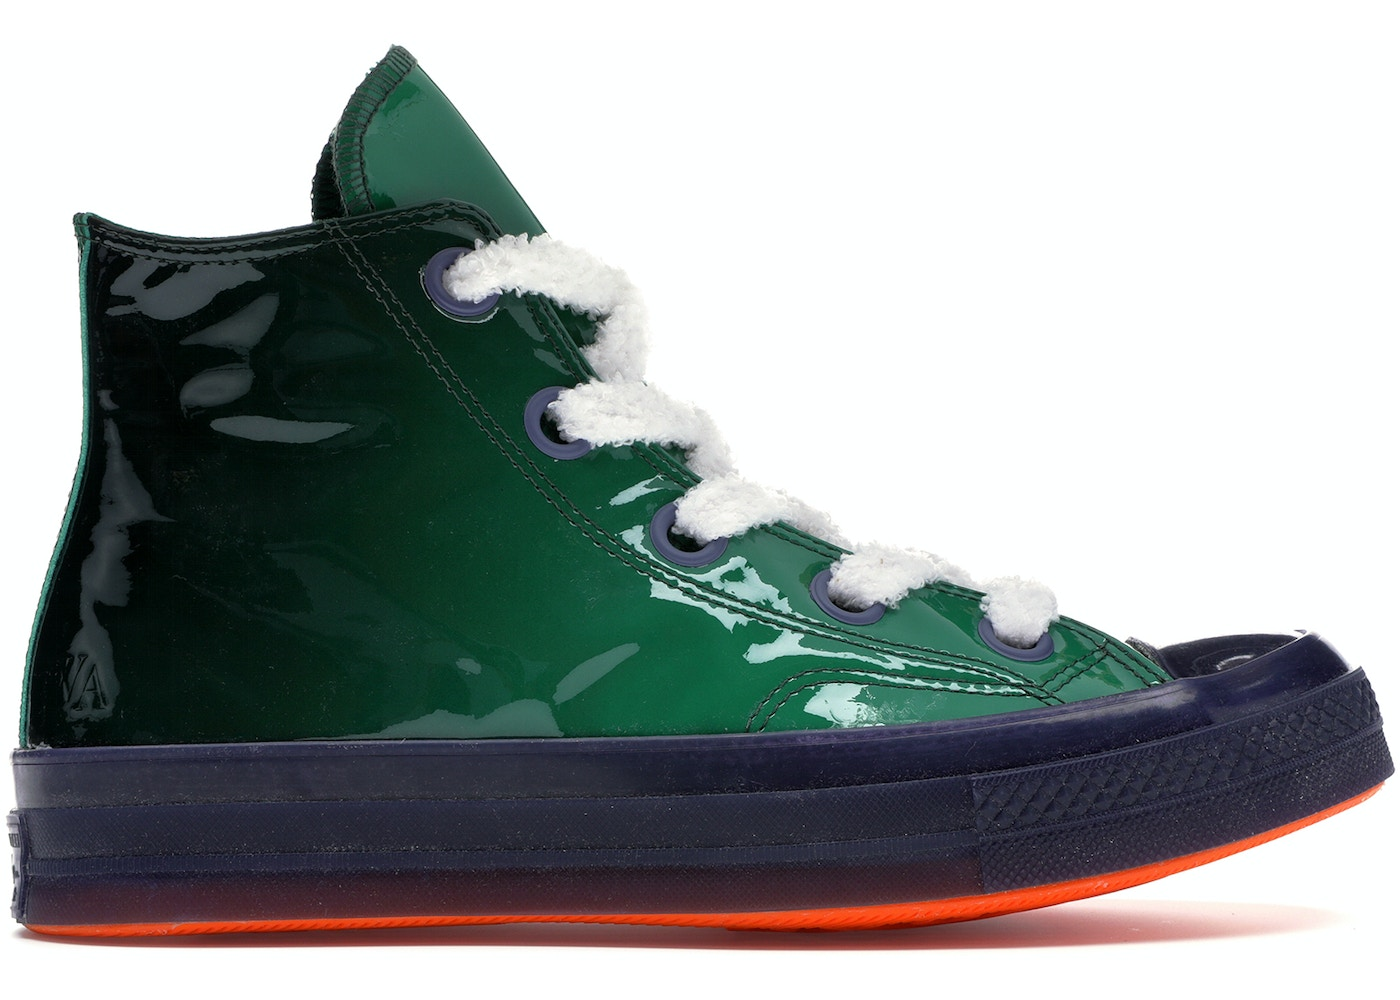 486604caf187 Converse Chuck Taylor All-Star 70s Hi Toy JW Anderson Green - 162287C